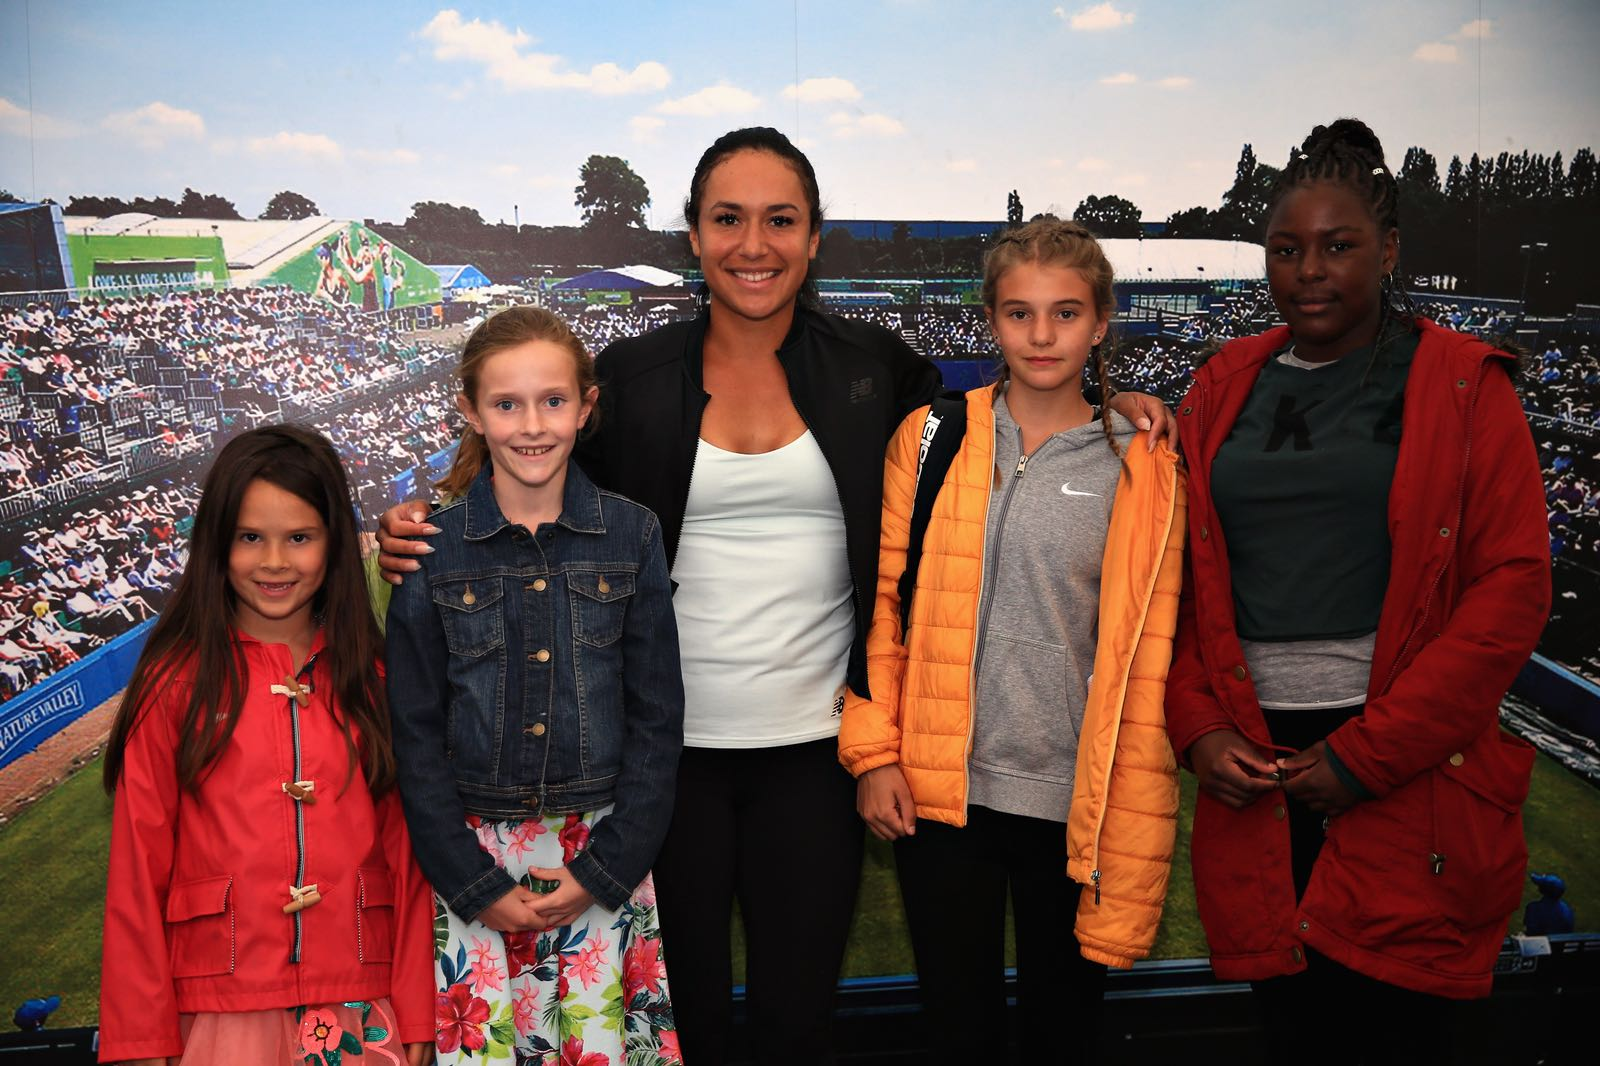 Elena Baltacha Foundation girls with Heather Watson at the Nature Valley Open in Nottingham